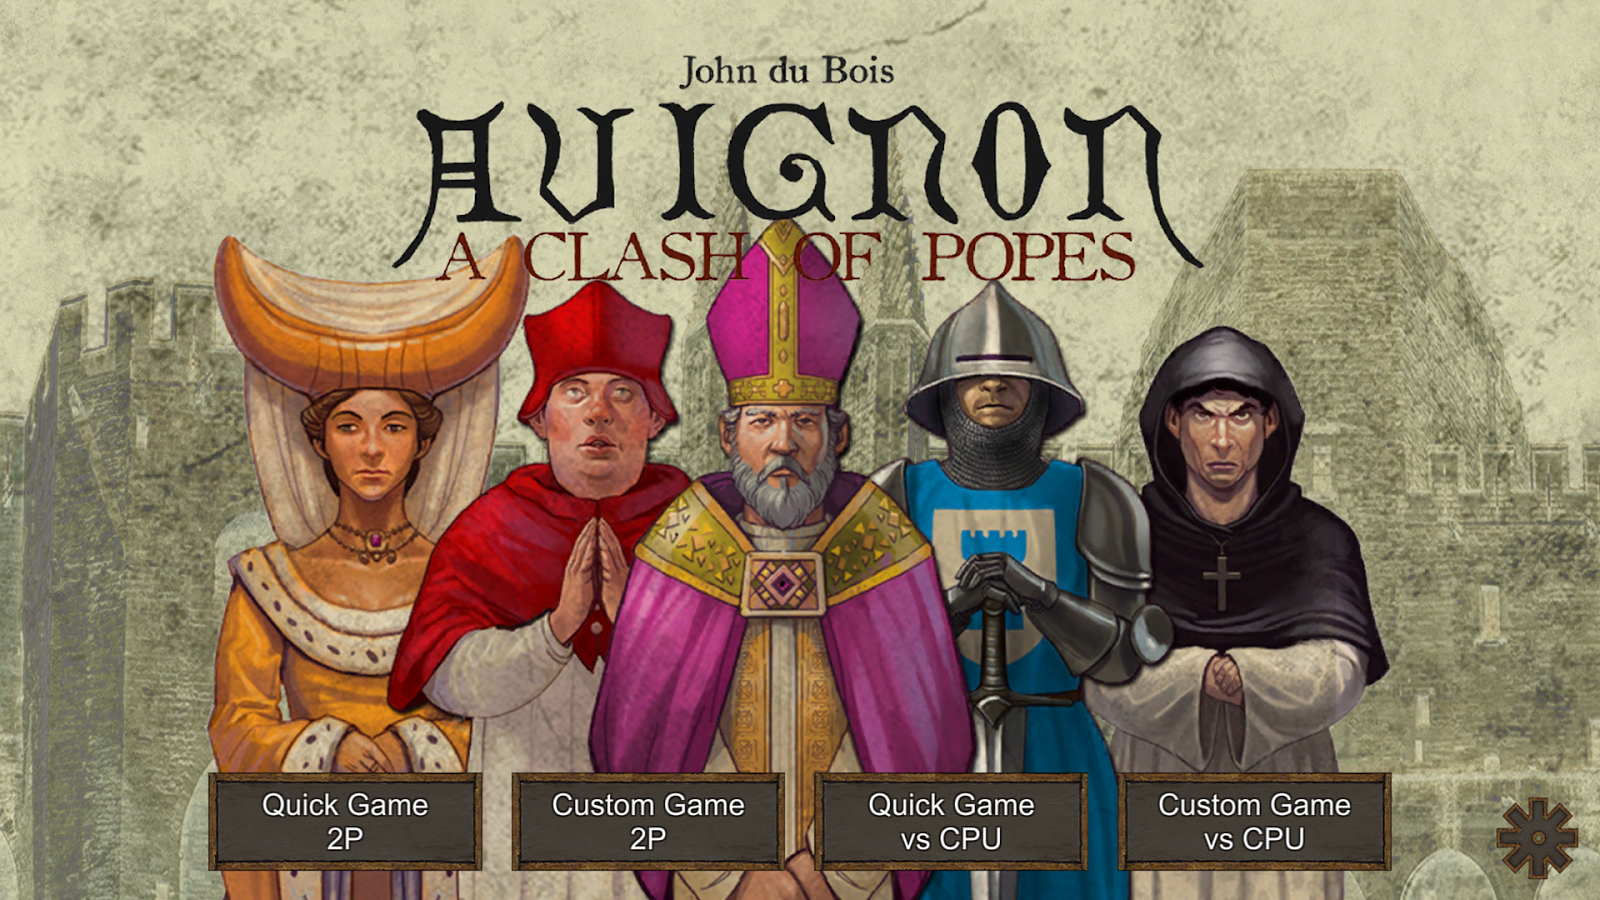 Avignon: A Clash of Popes Screenshot 4